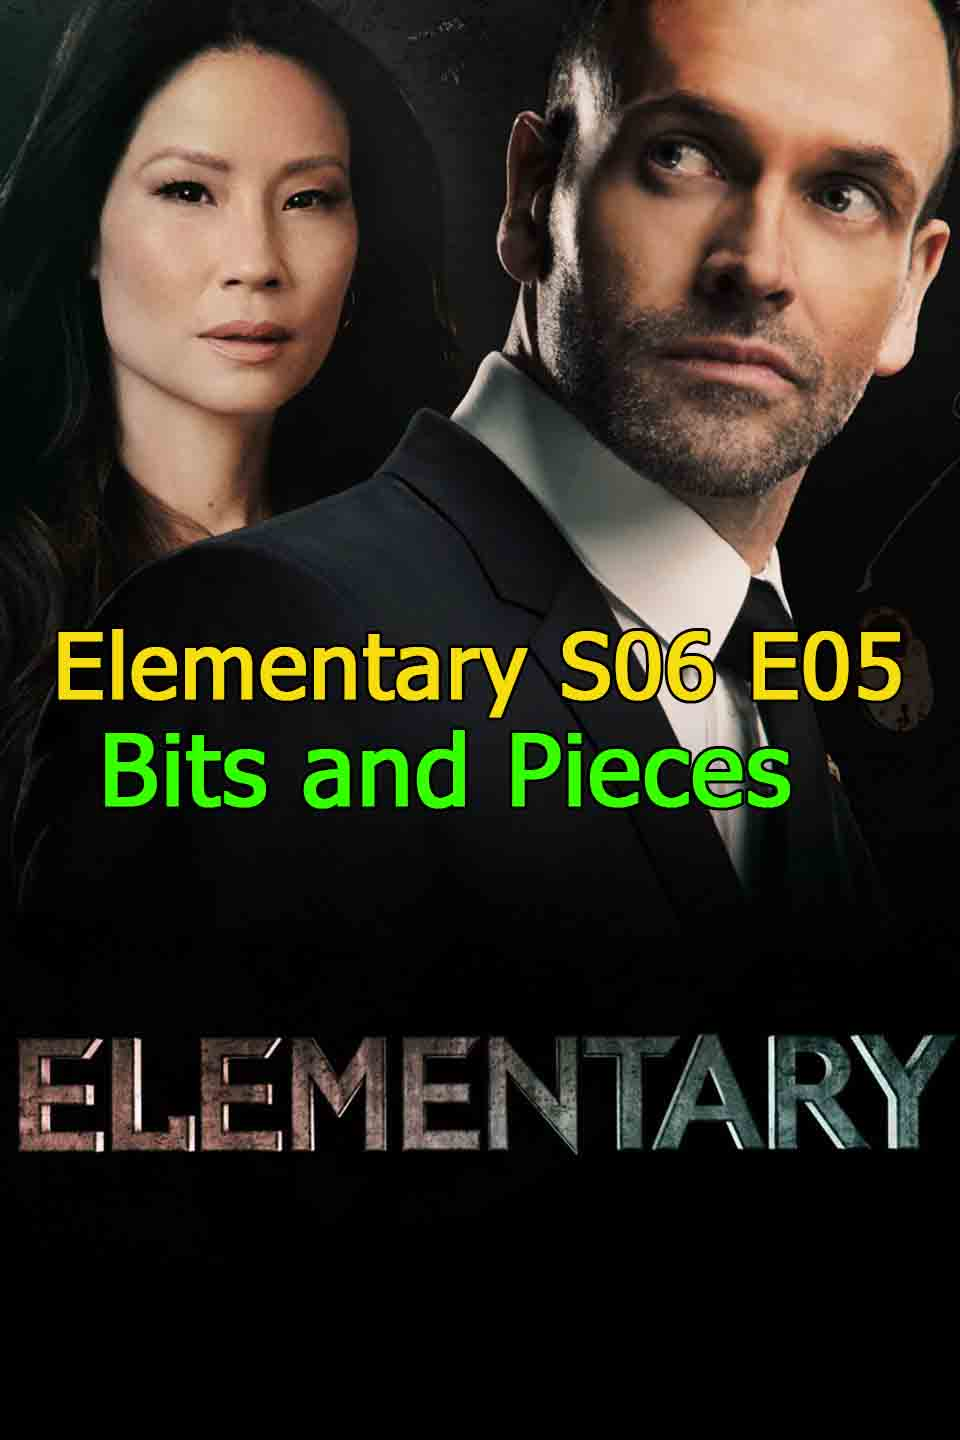 Watch Elementary Season 6 Episode 5 Bits and Pieces thumbnail